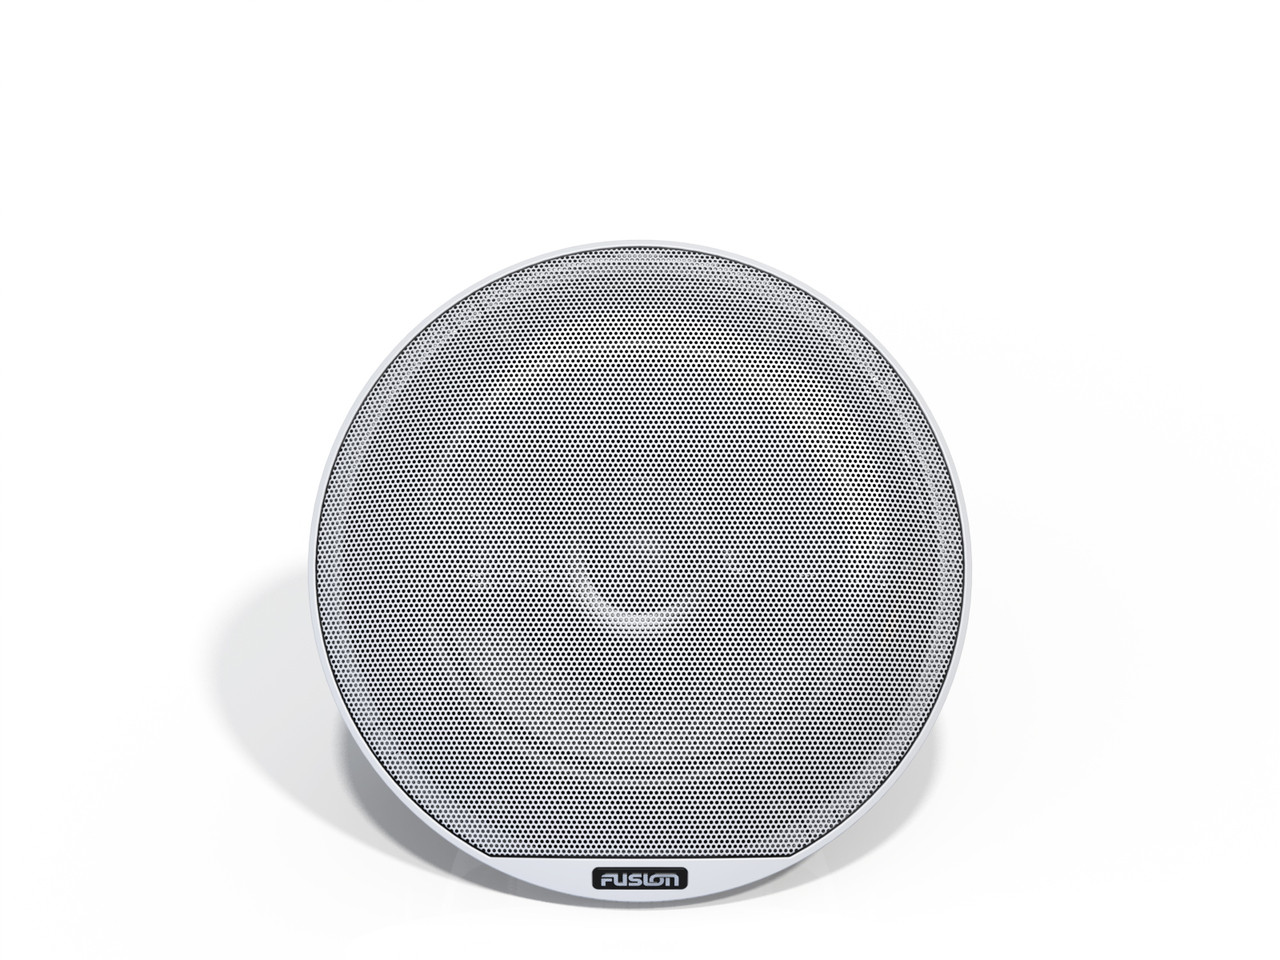 Fusion SG-F77W Classic Marine Speaker Front View